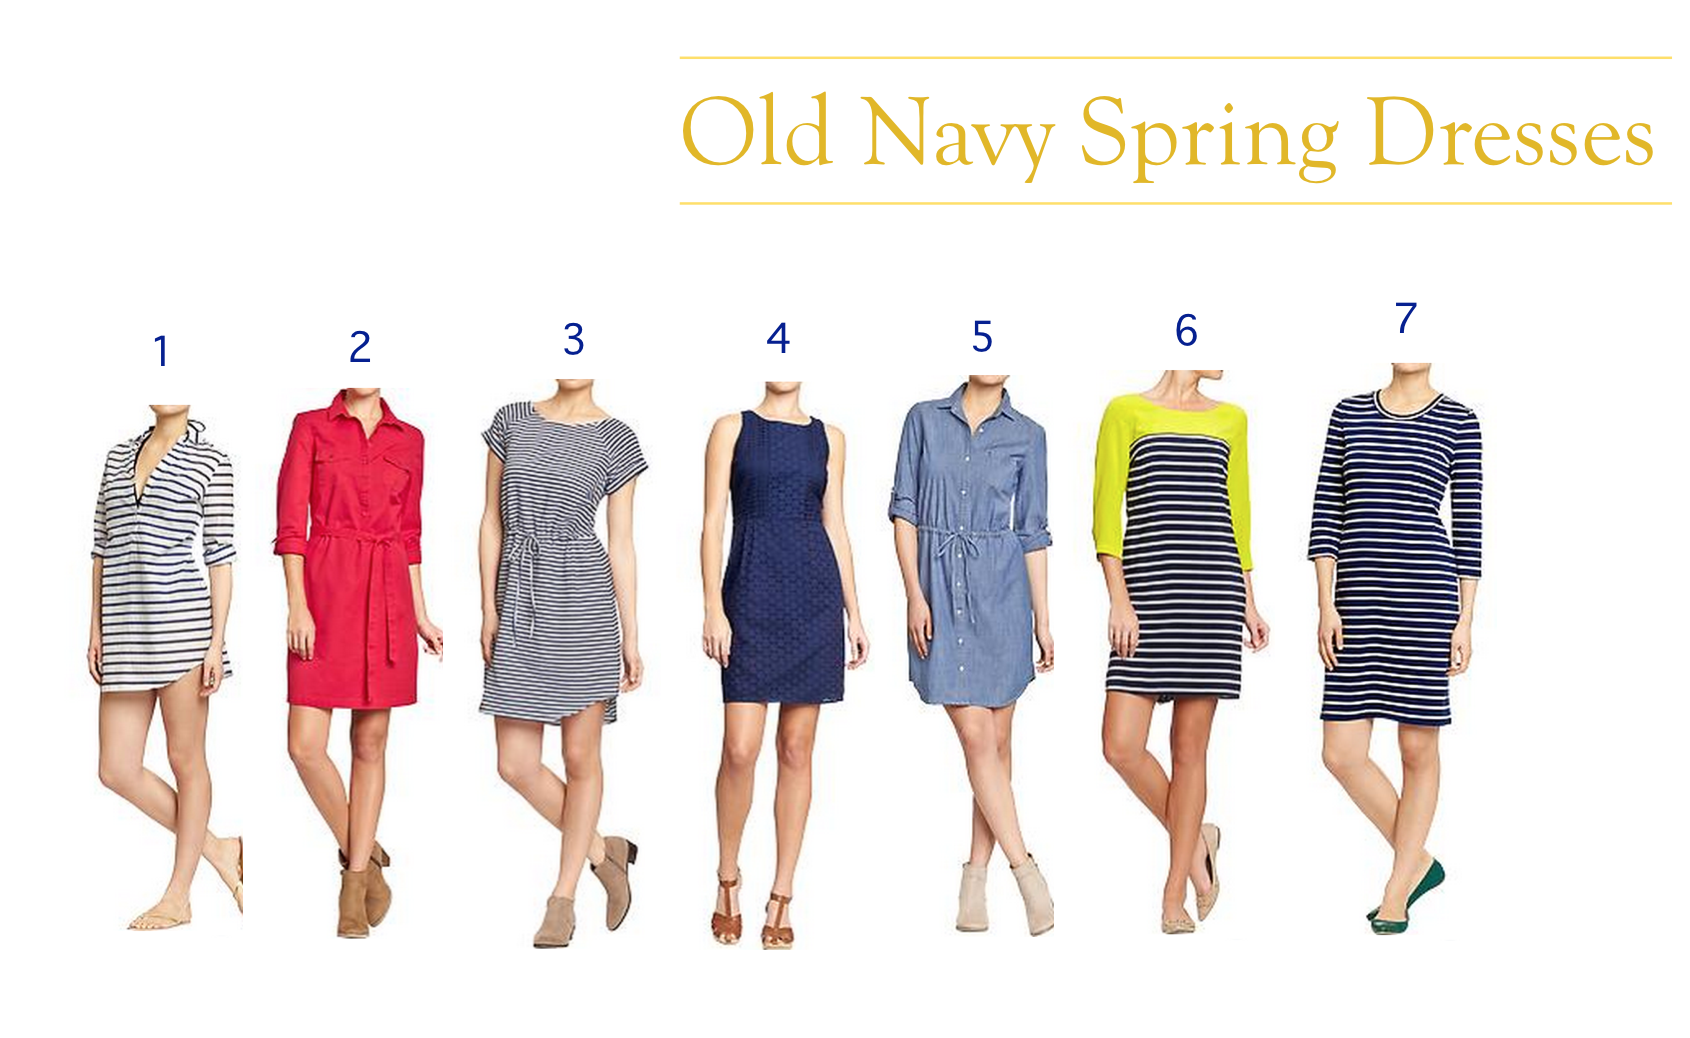 Elise Marie Goes on a Shopping Spree: Old Navy Spring Dresses